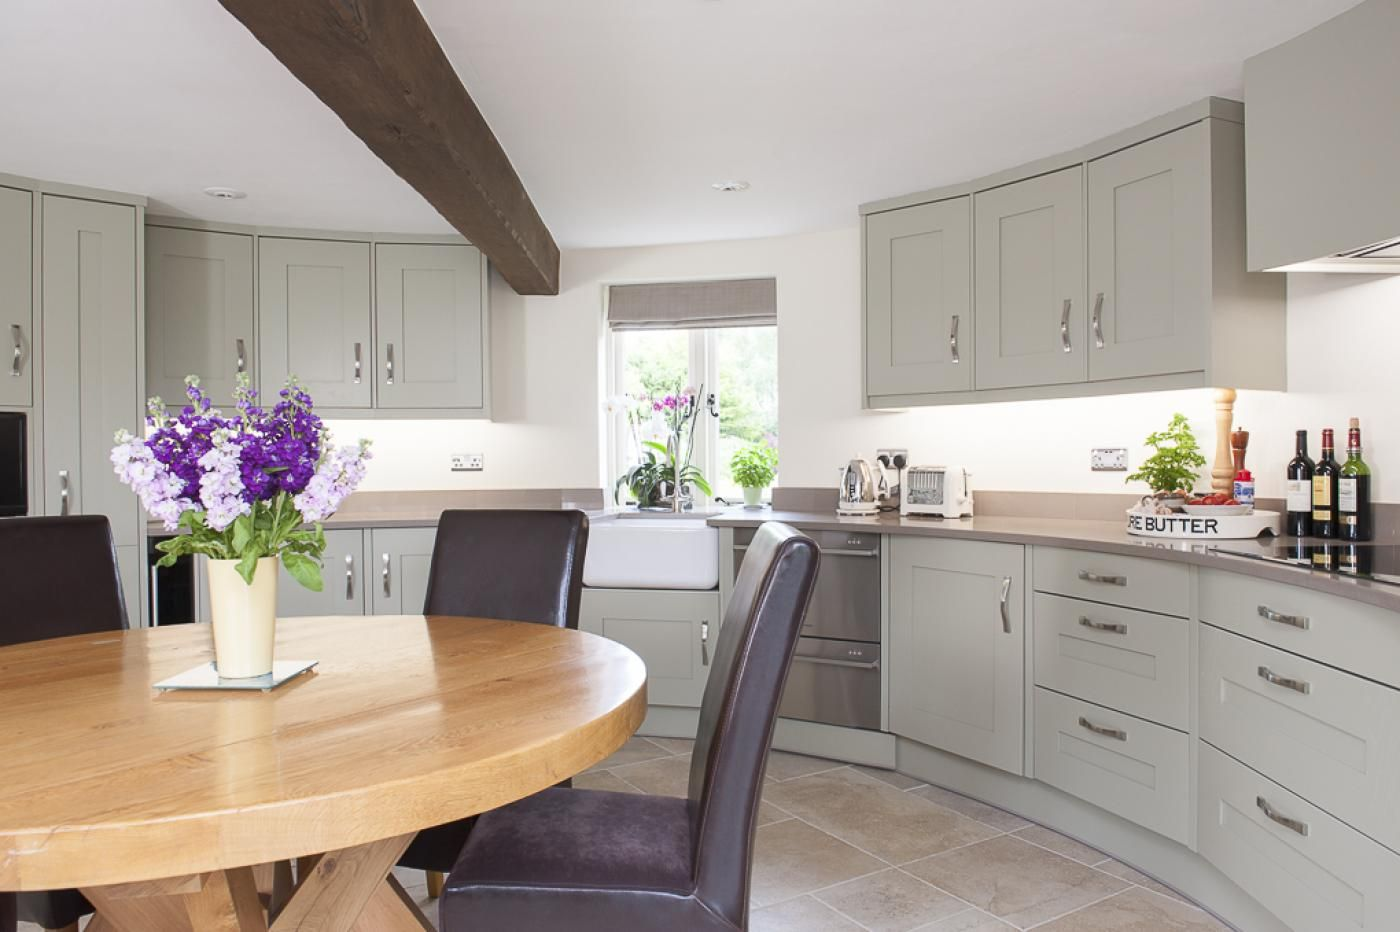 Kitchens Interiors Oast House Roundel Kitchen Kitchens Jm Interiors Oast House